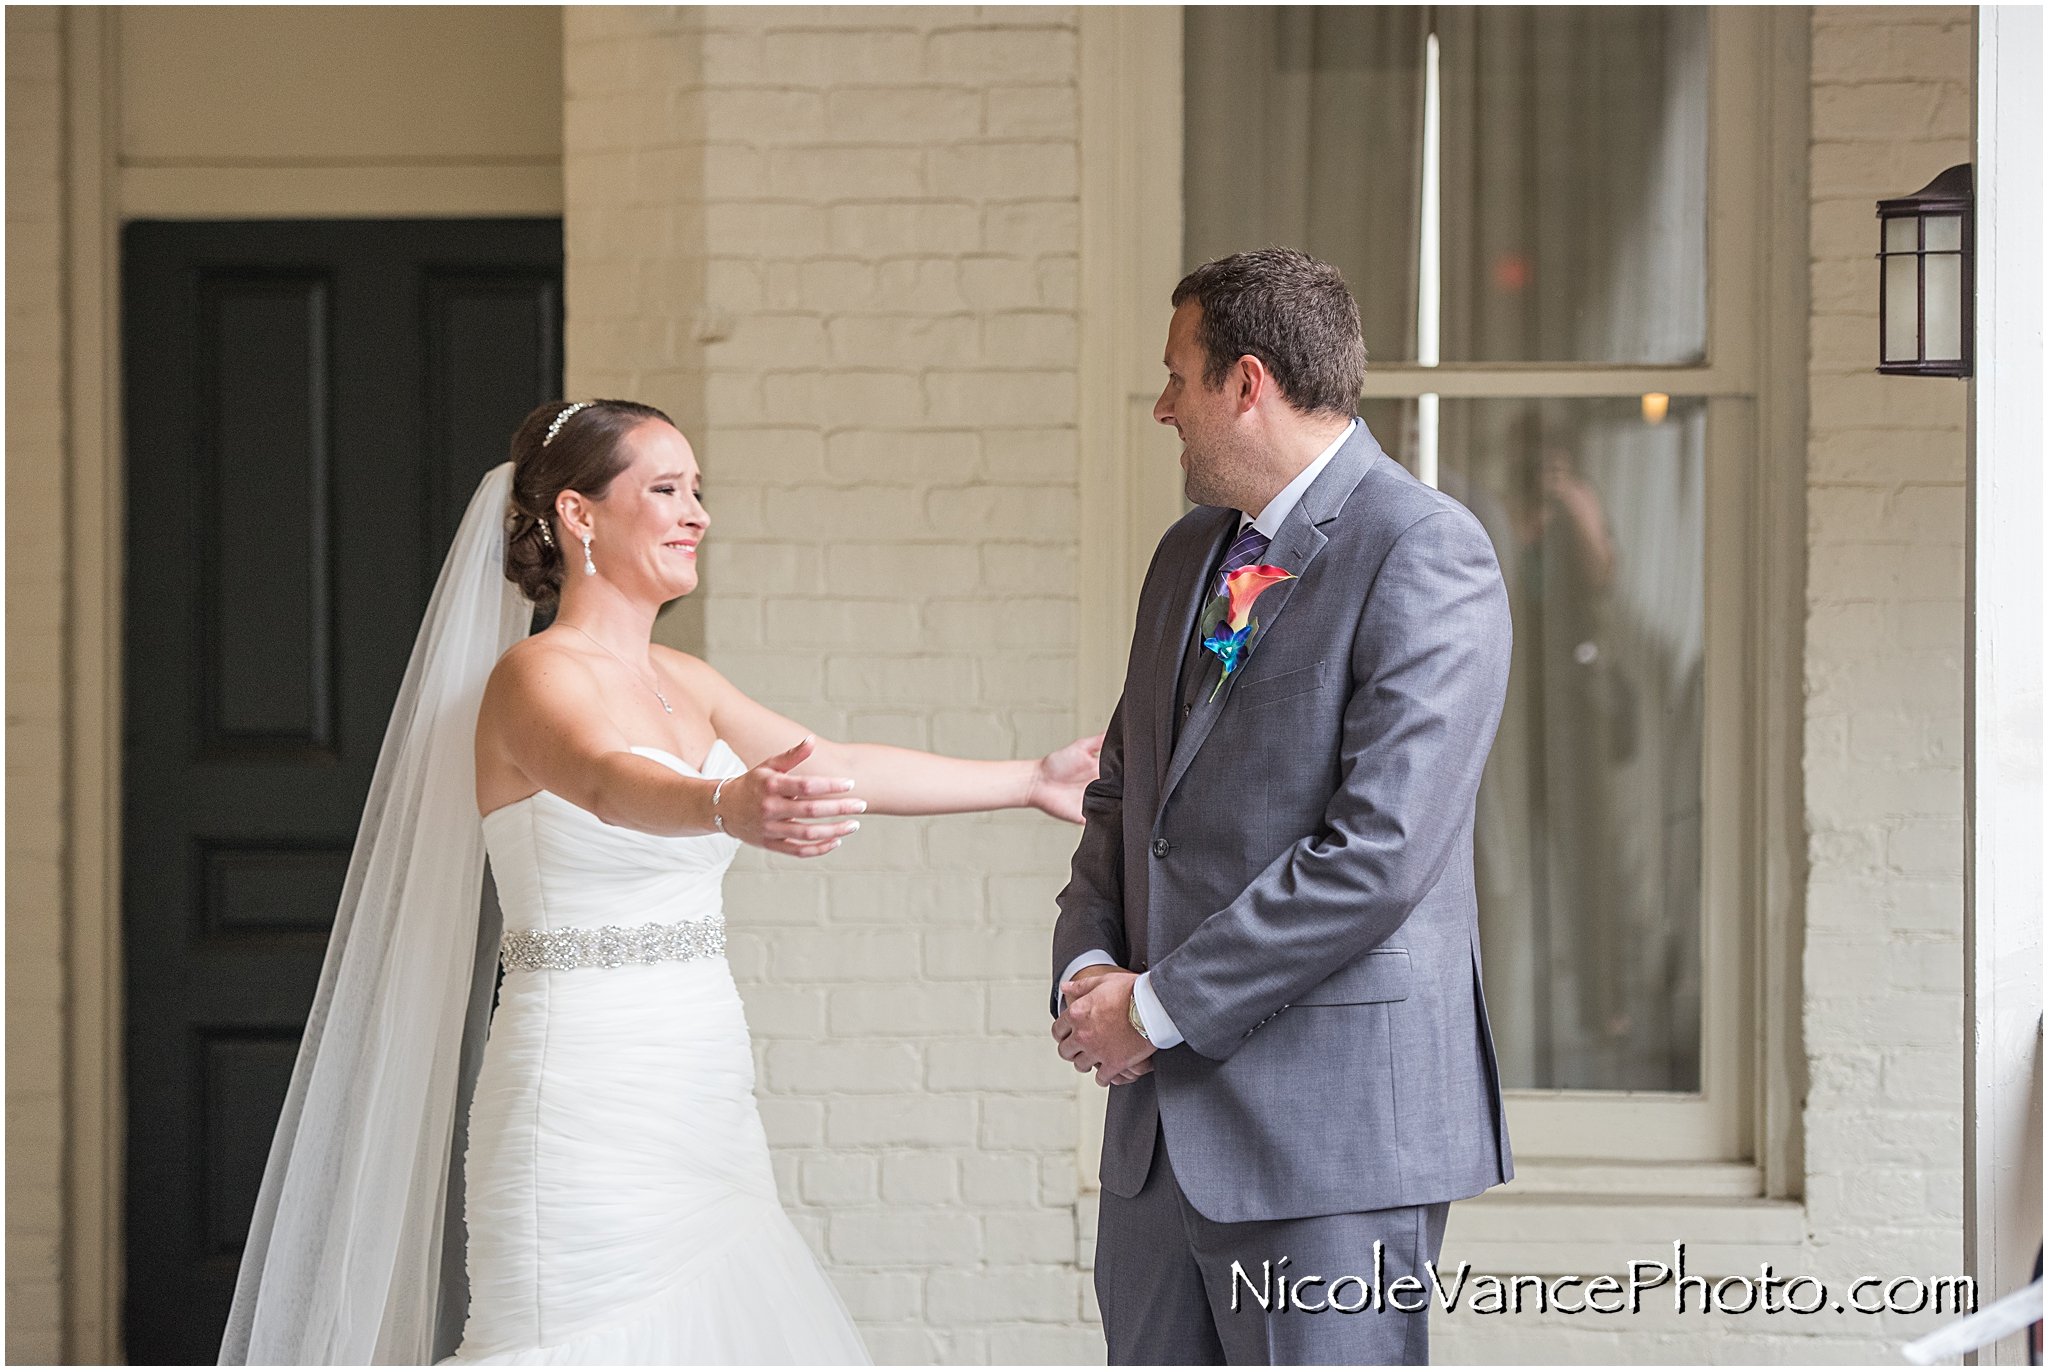 An emotional and touching first look together on the balcony at Linden Row Inn.